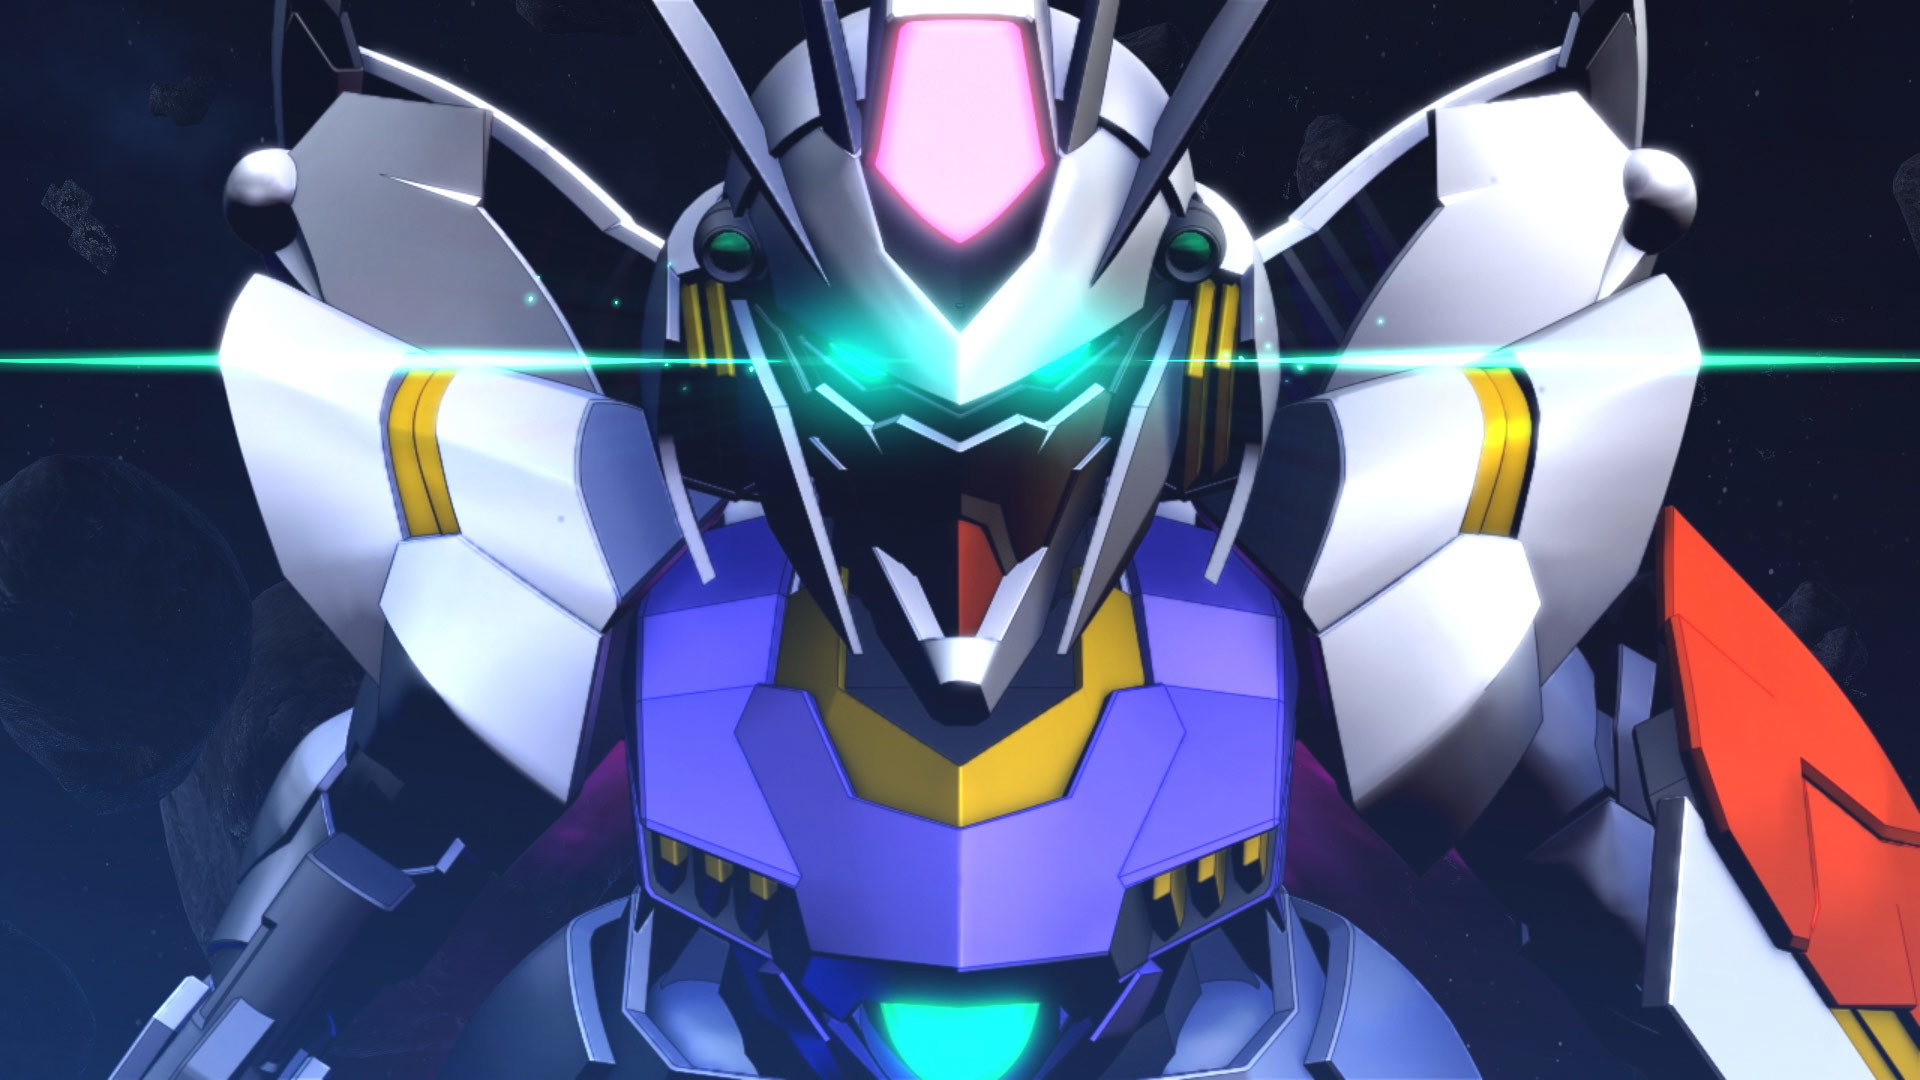 SD GUNDAM G GENERATION CROSS RAYS Added Dispatch Mission Set 3 screenshot